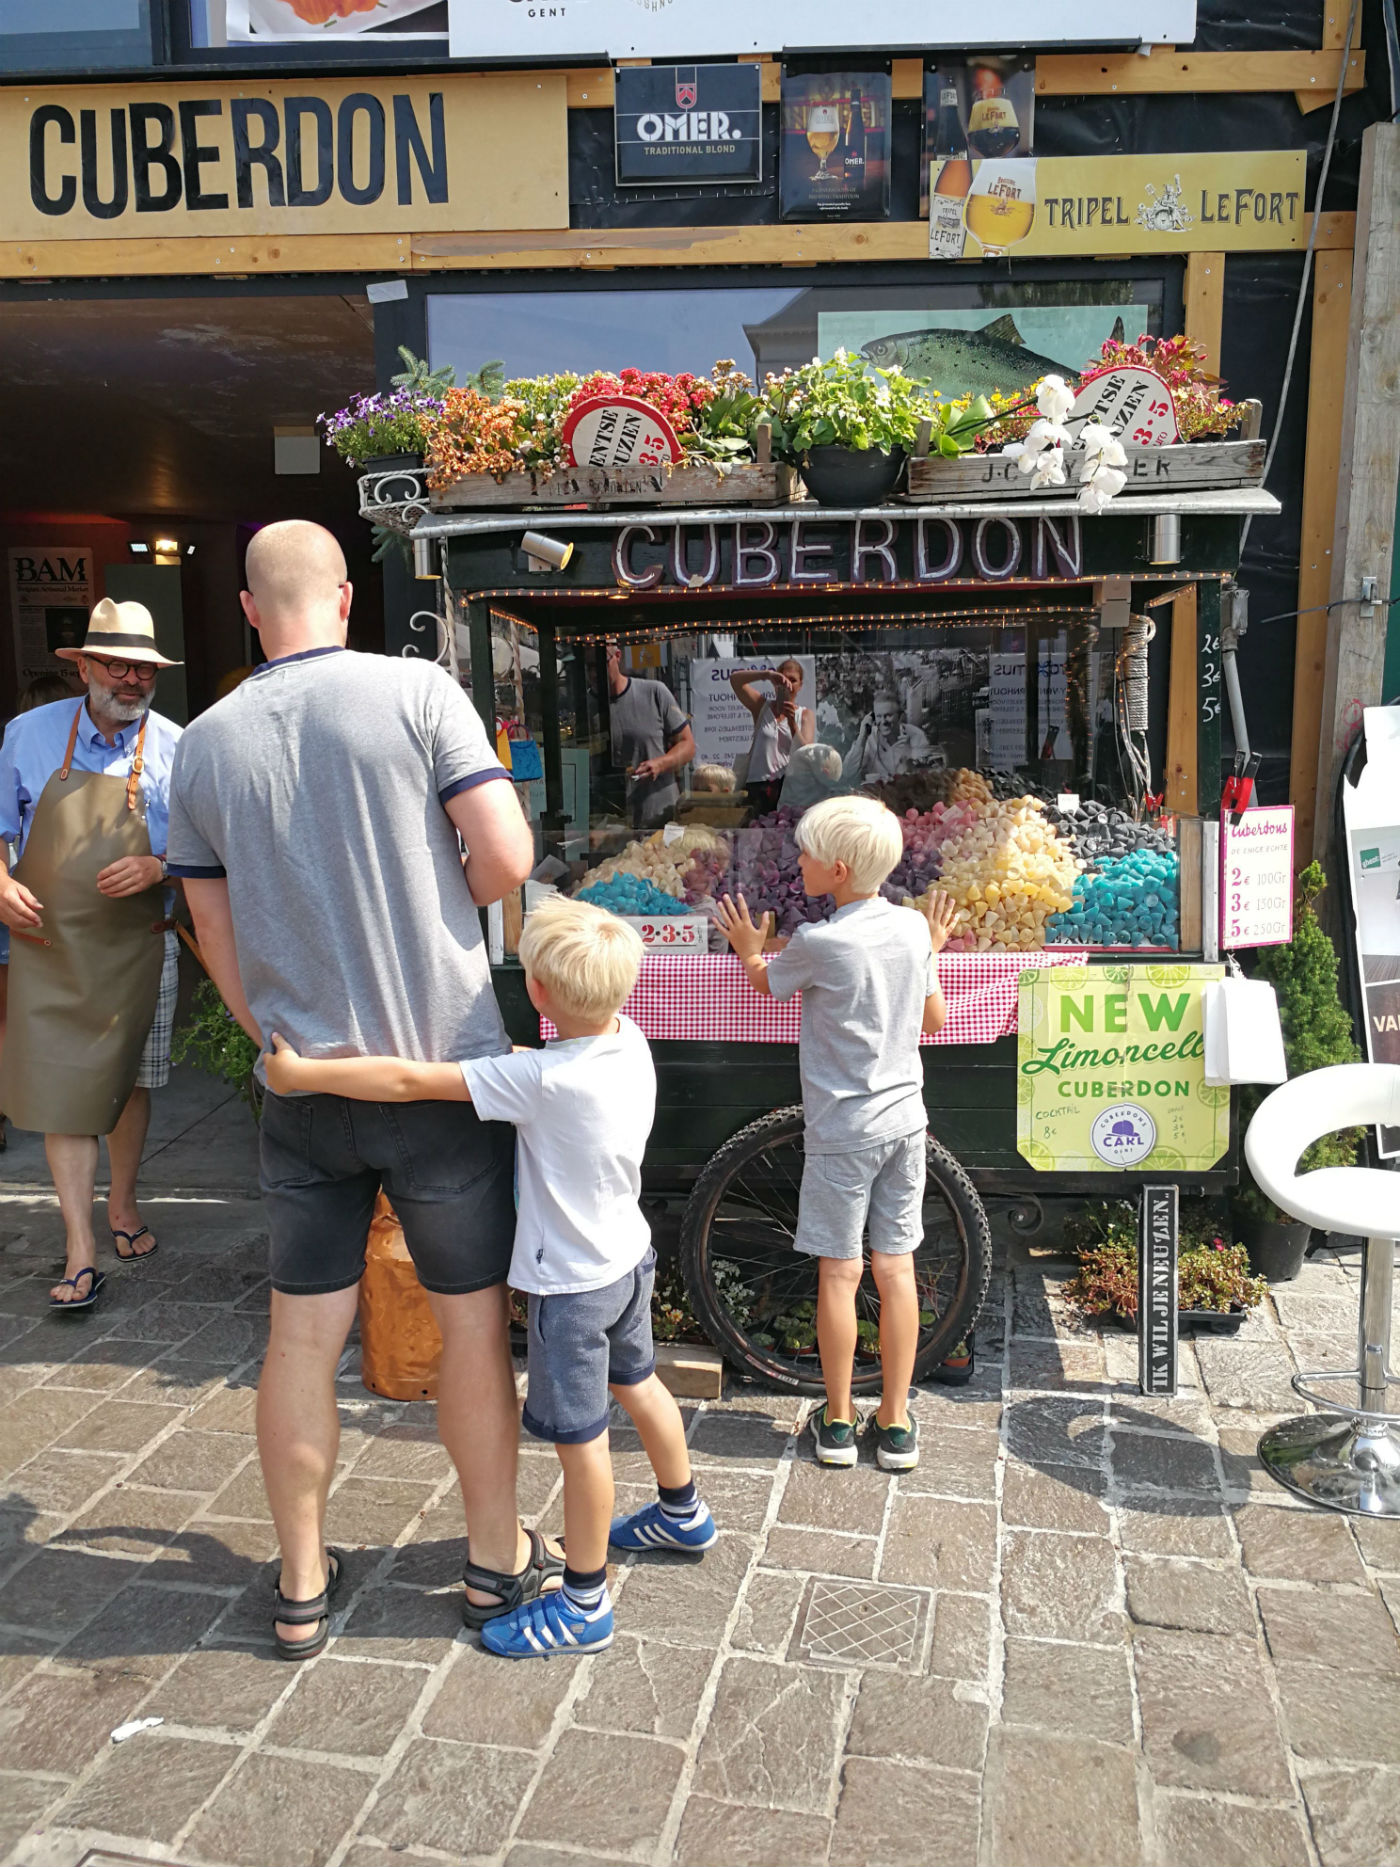 Buying Cuberdons in Ghent. One of the many fun things you can do with children in Ghent, Belgium. | Ghent travel | Ghent itinerary | Ghent with kids | Things to do in Ghent | Ghent Belgium|